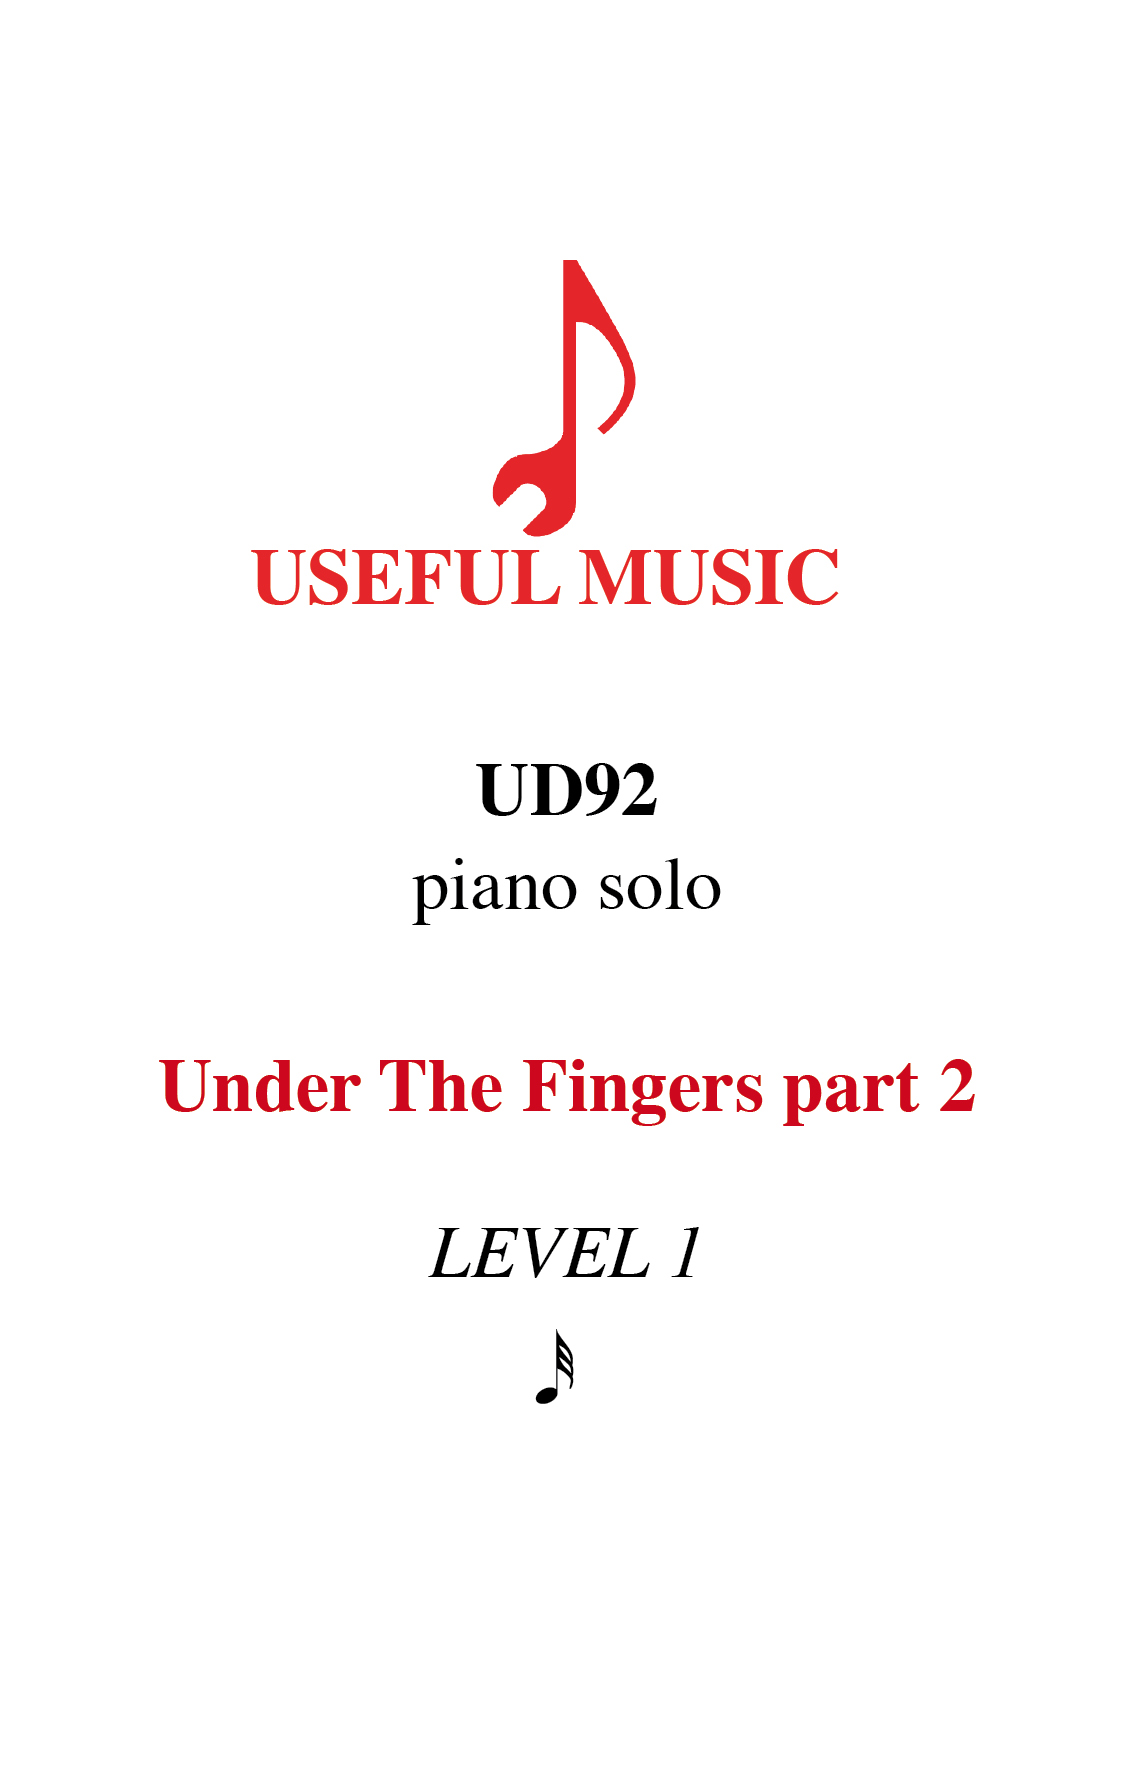 Under the Fingers part 2